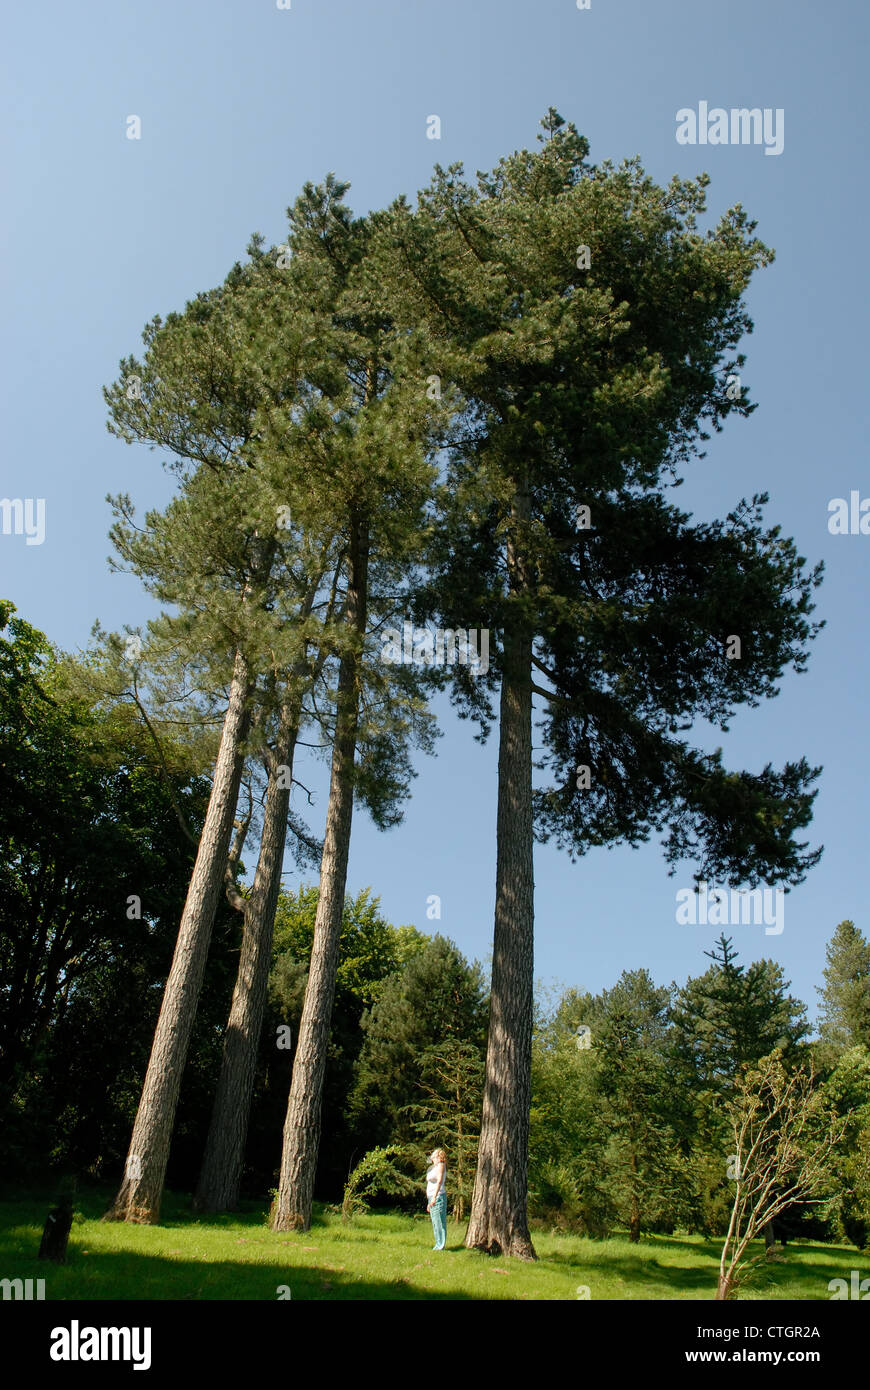 A woman looks up at some tall trees at Hergest Croft Gardens in Kington Herefordshire - Stock Image